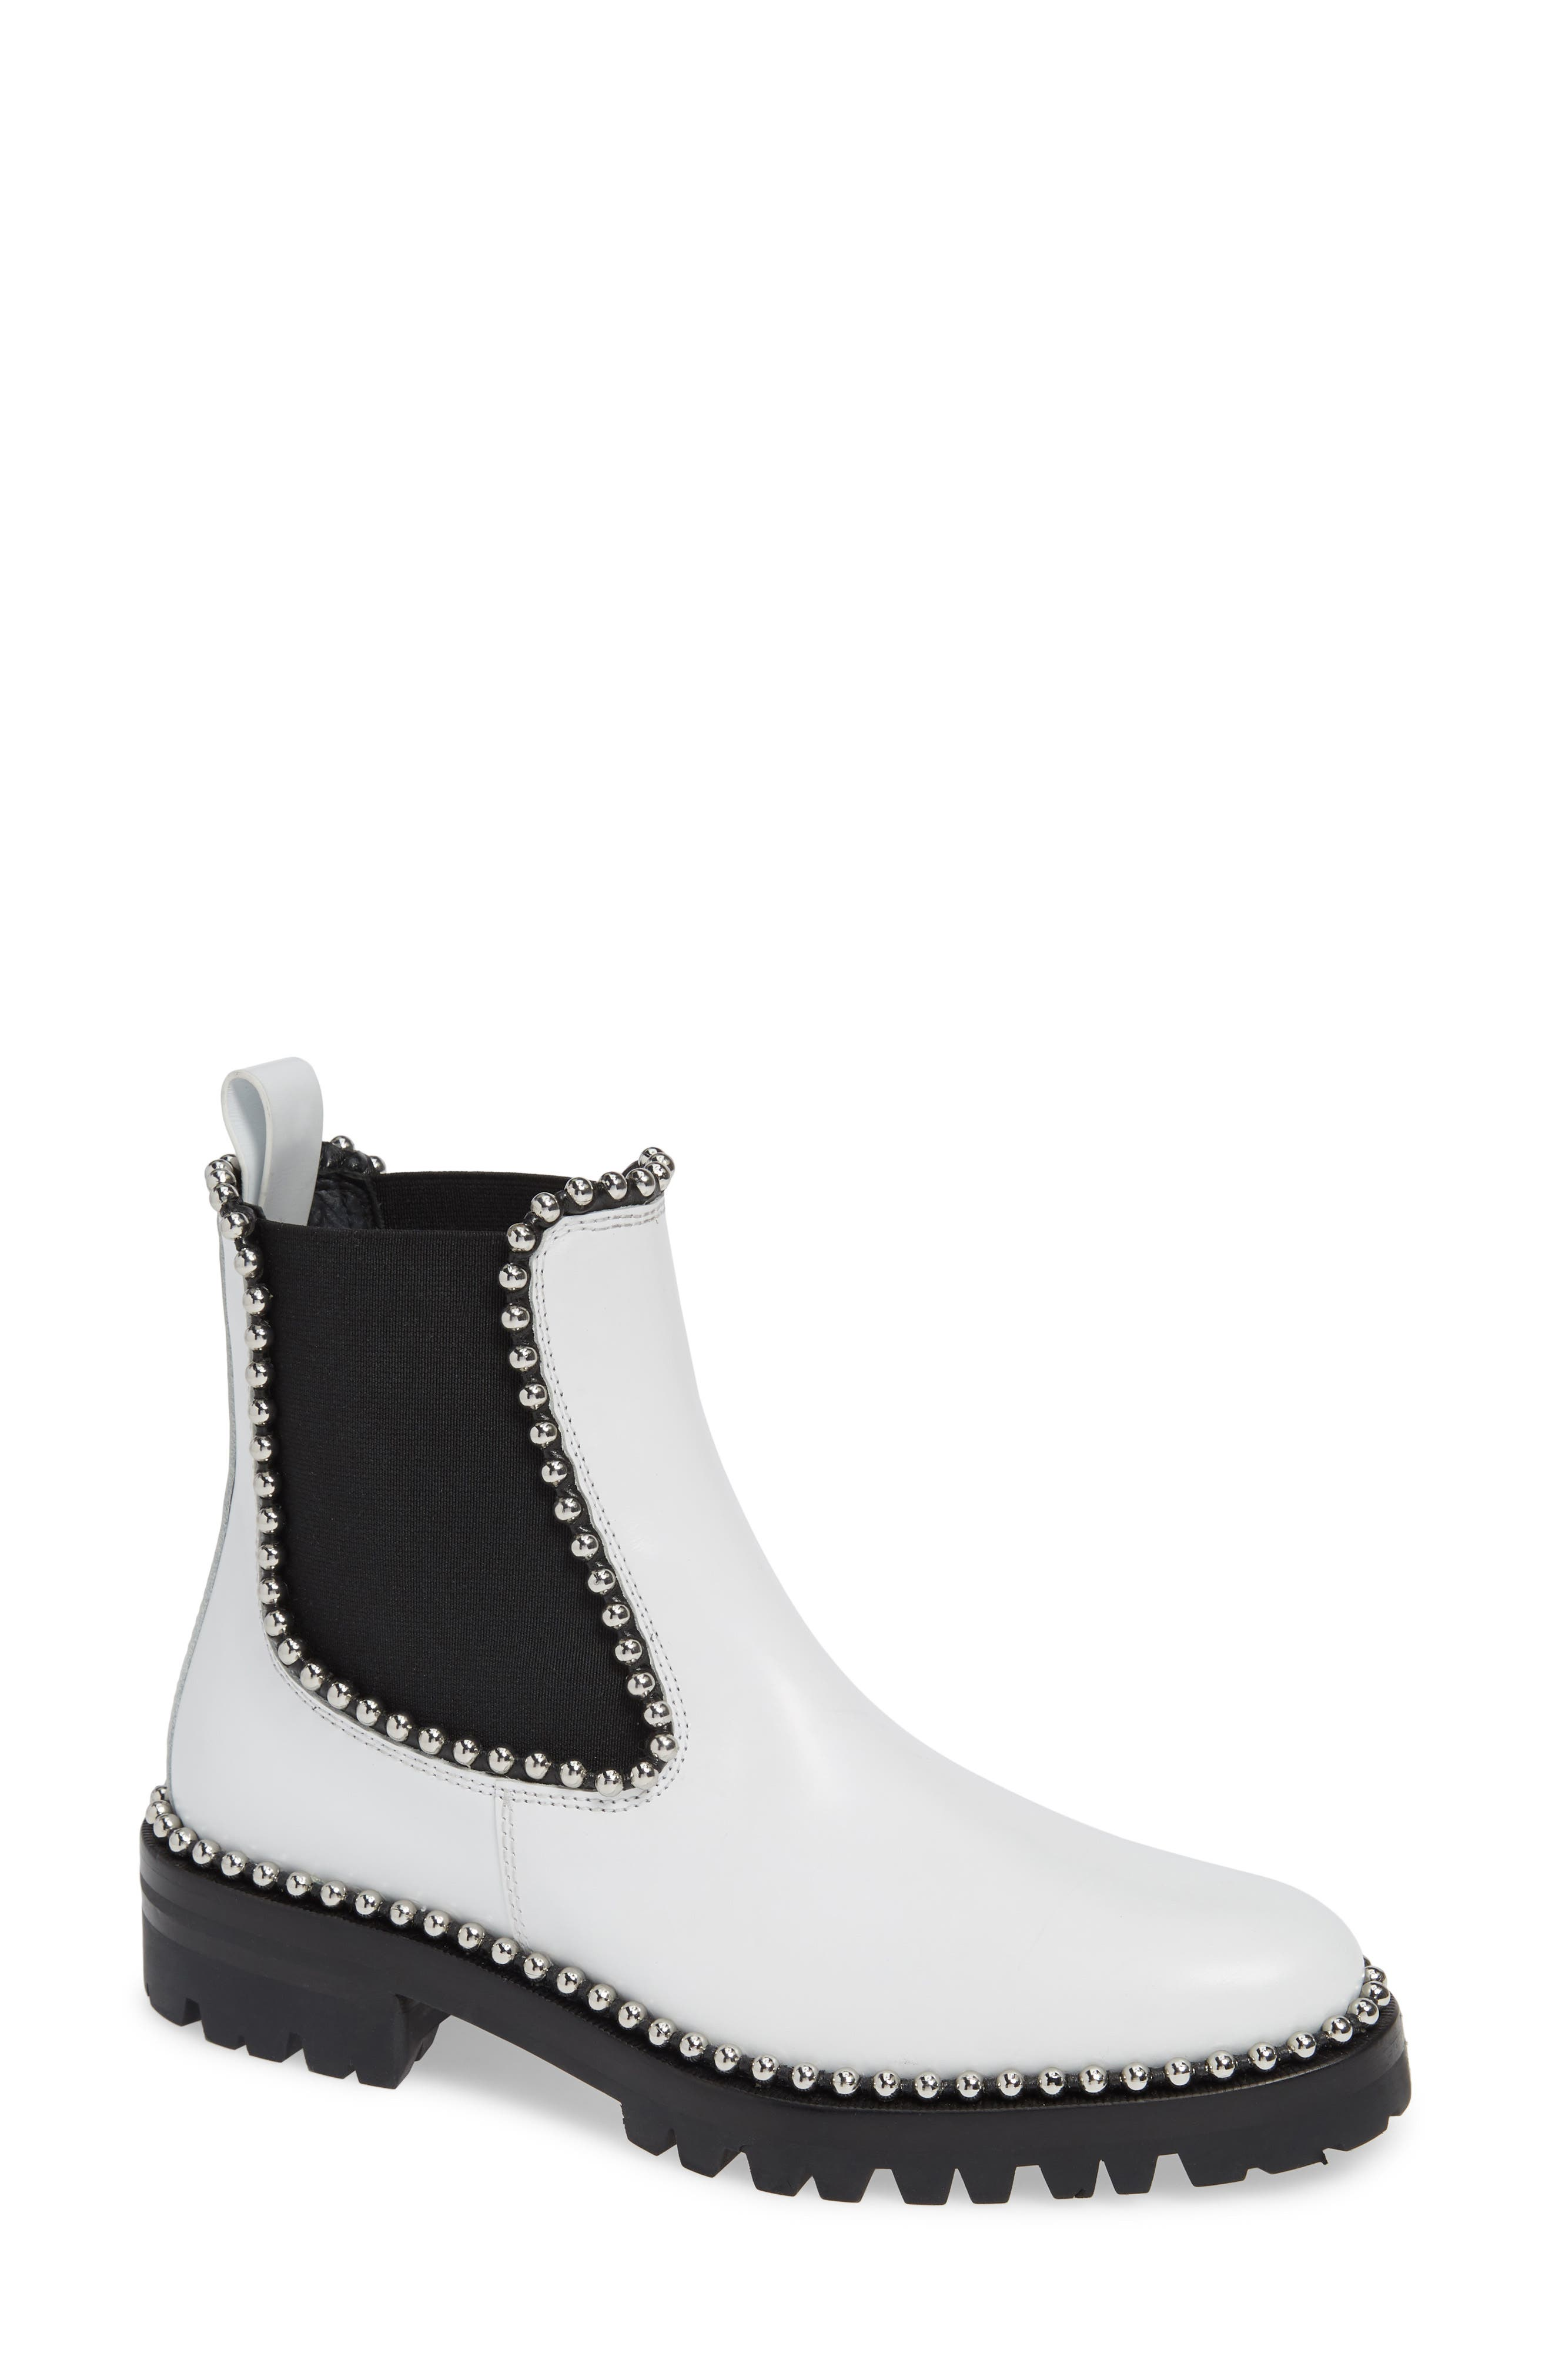 Alexander Wang Spencer Chelsea Boot, White